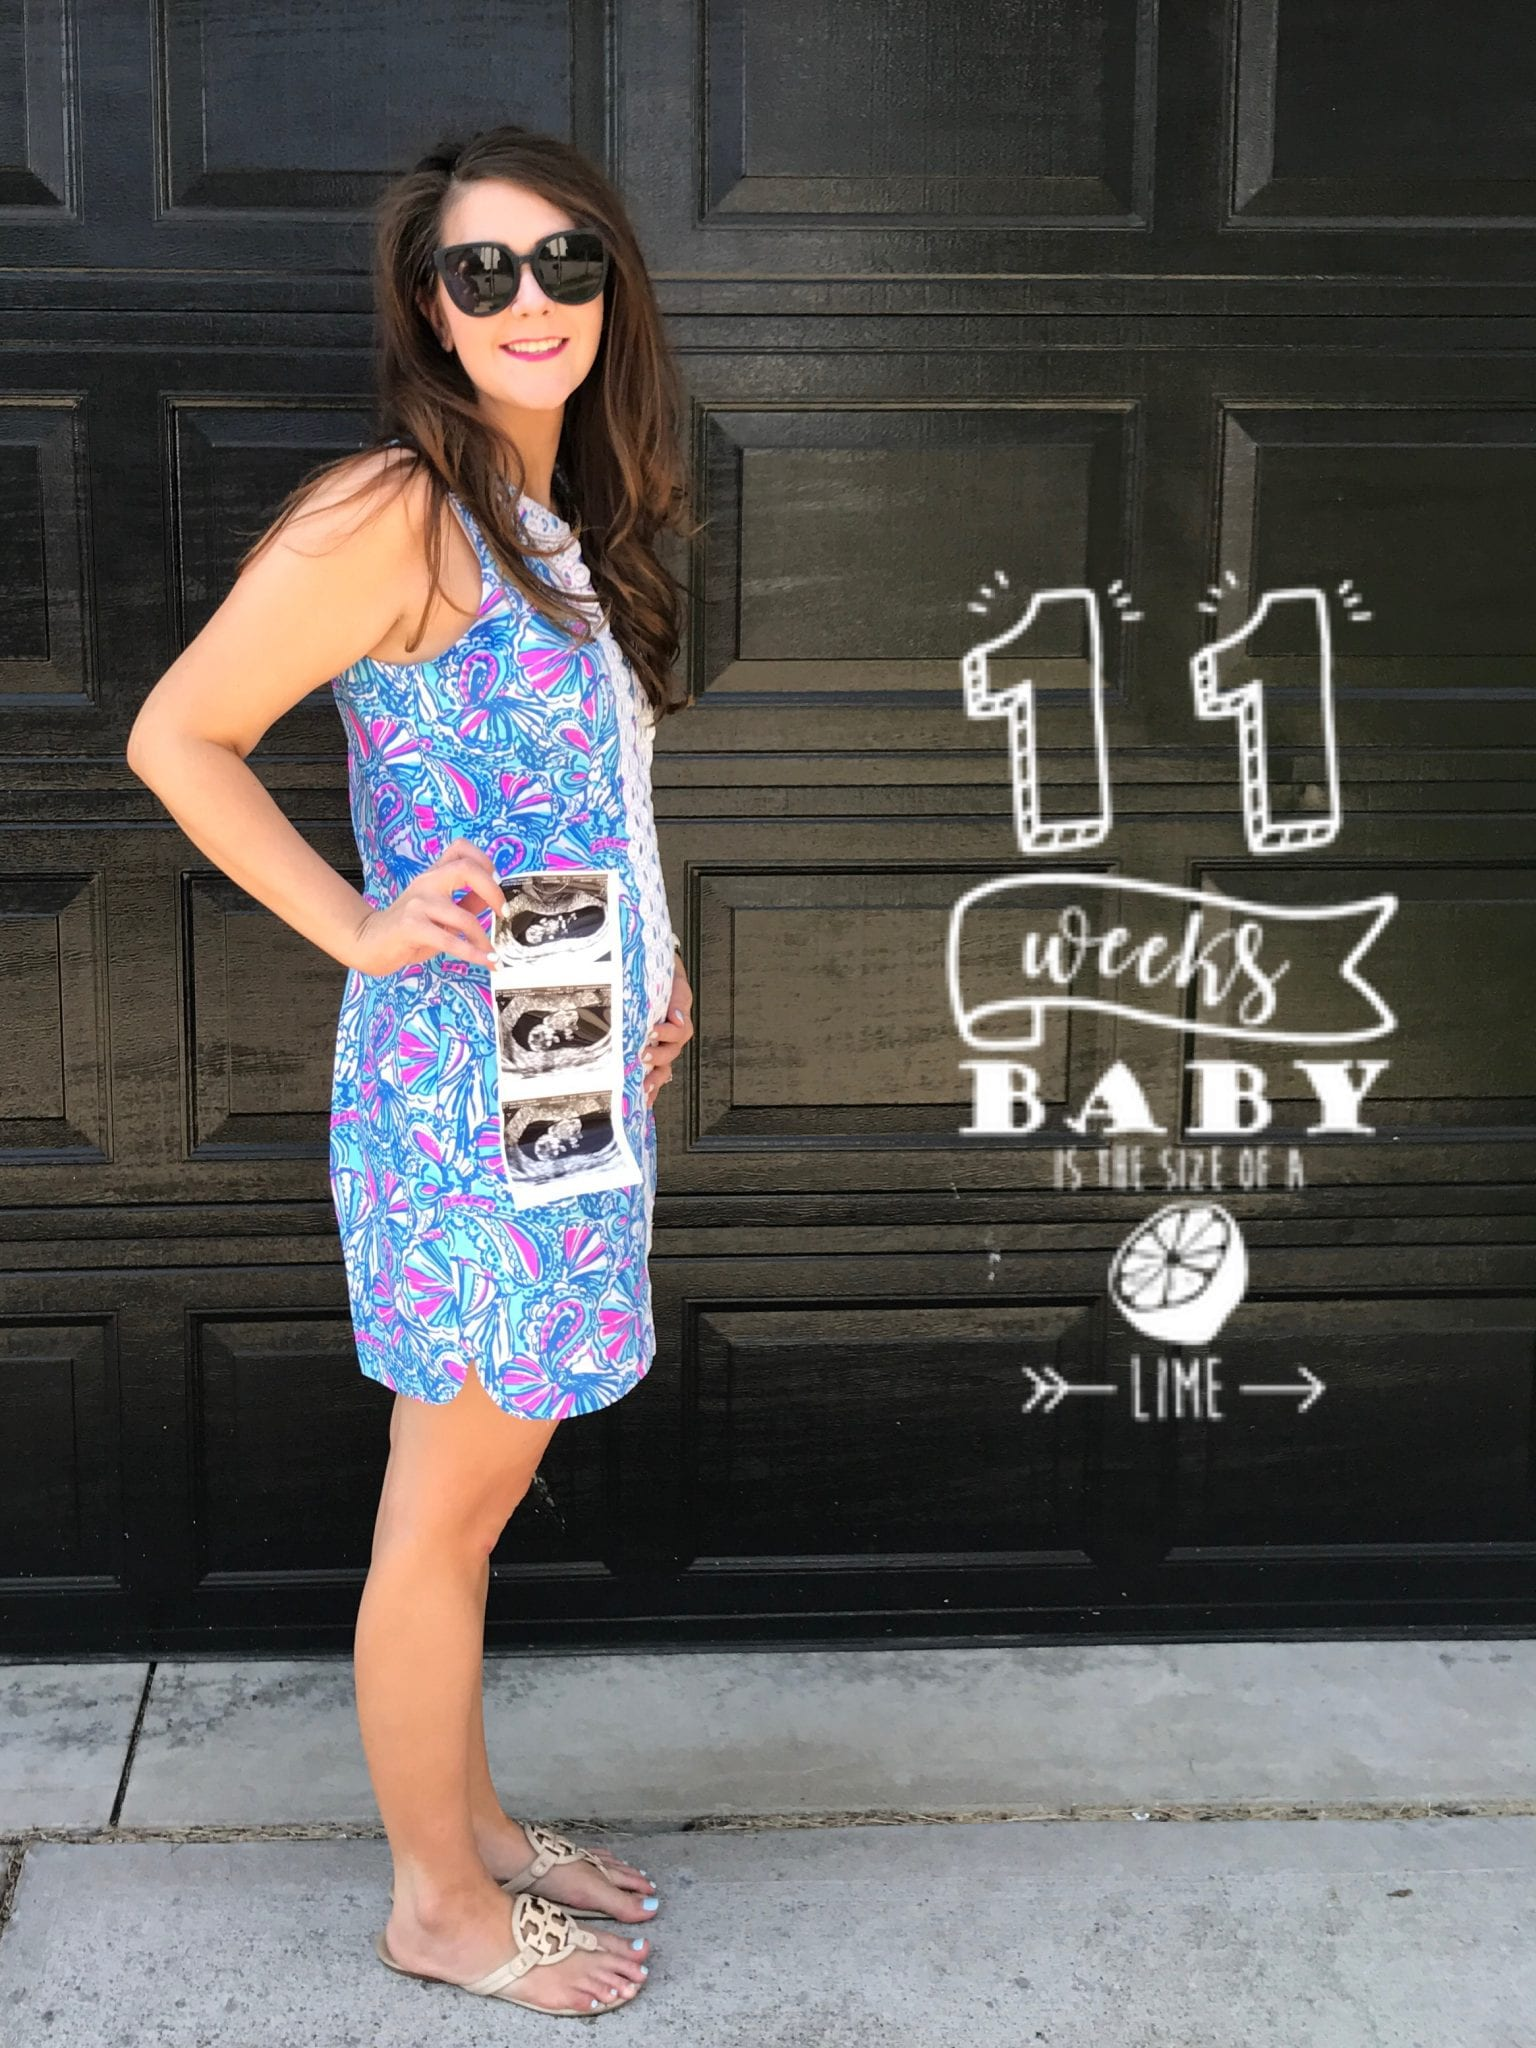 Weekly Bump Pictures with writing and fruit, pregnancy week-by-week